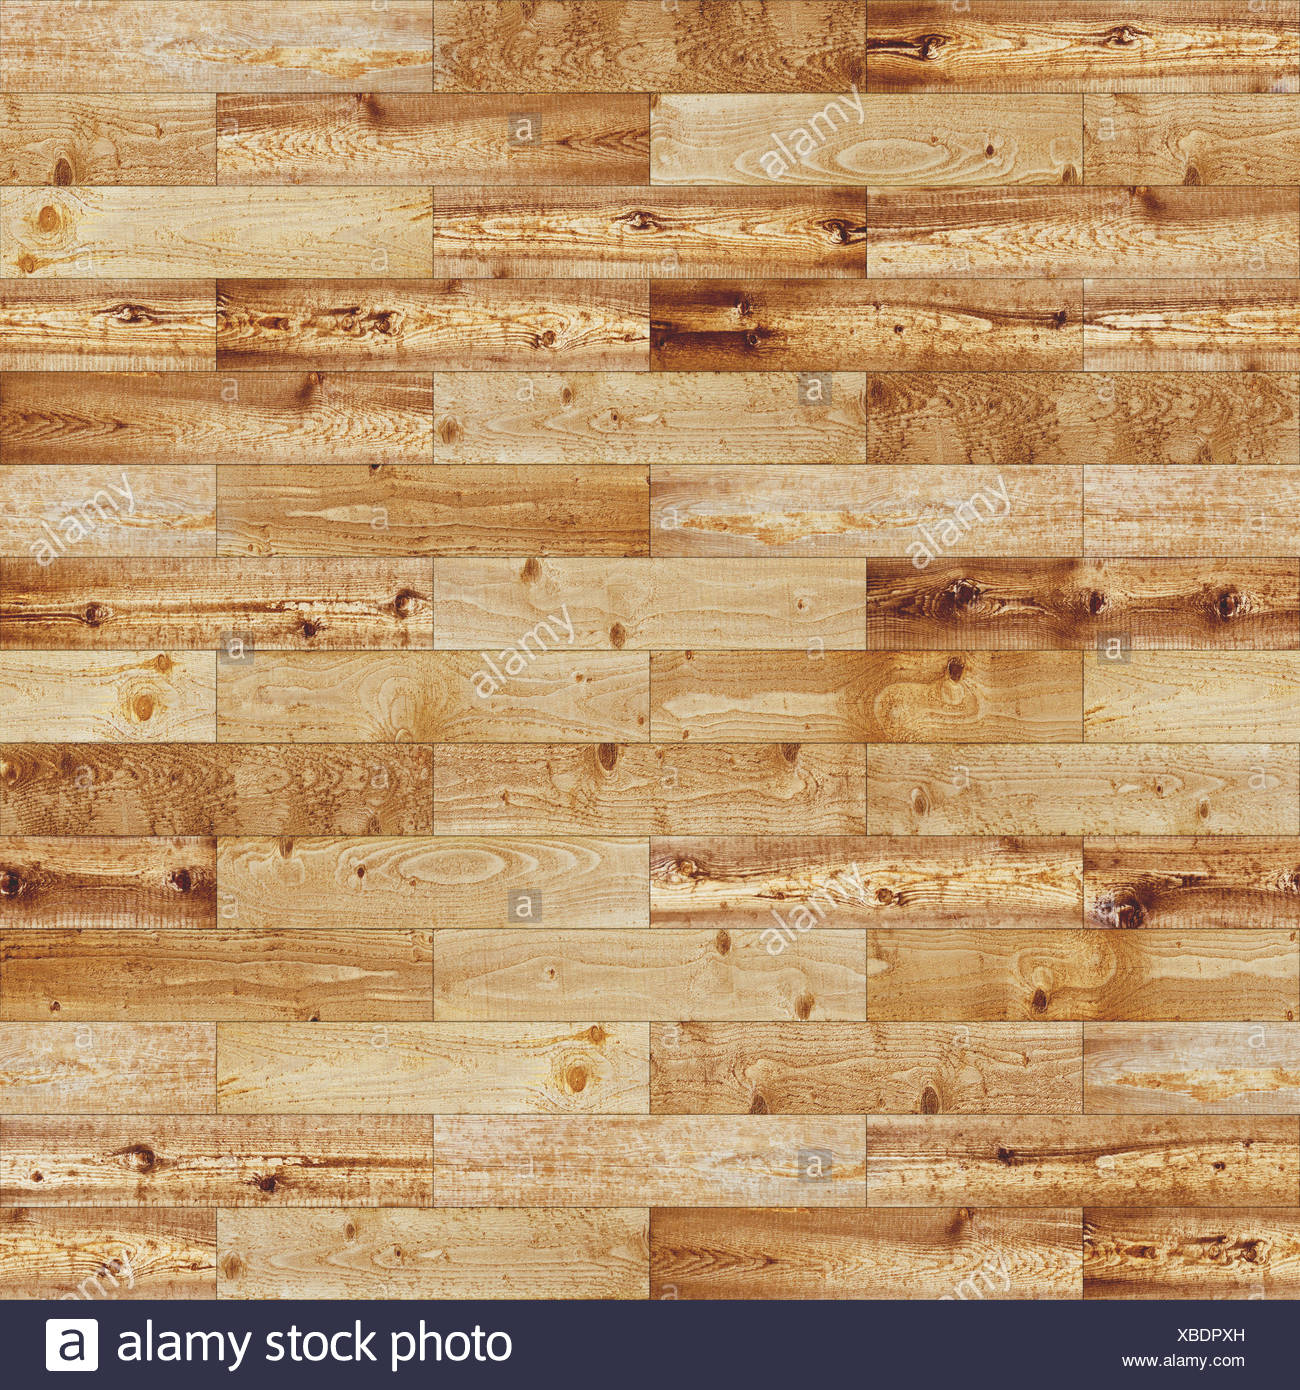 Boards Pine Wood Stock Photos & Boards Pine Wood Stock Images - Alamy